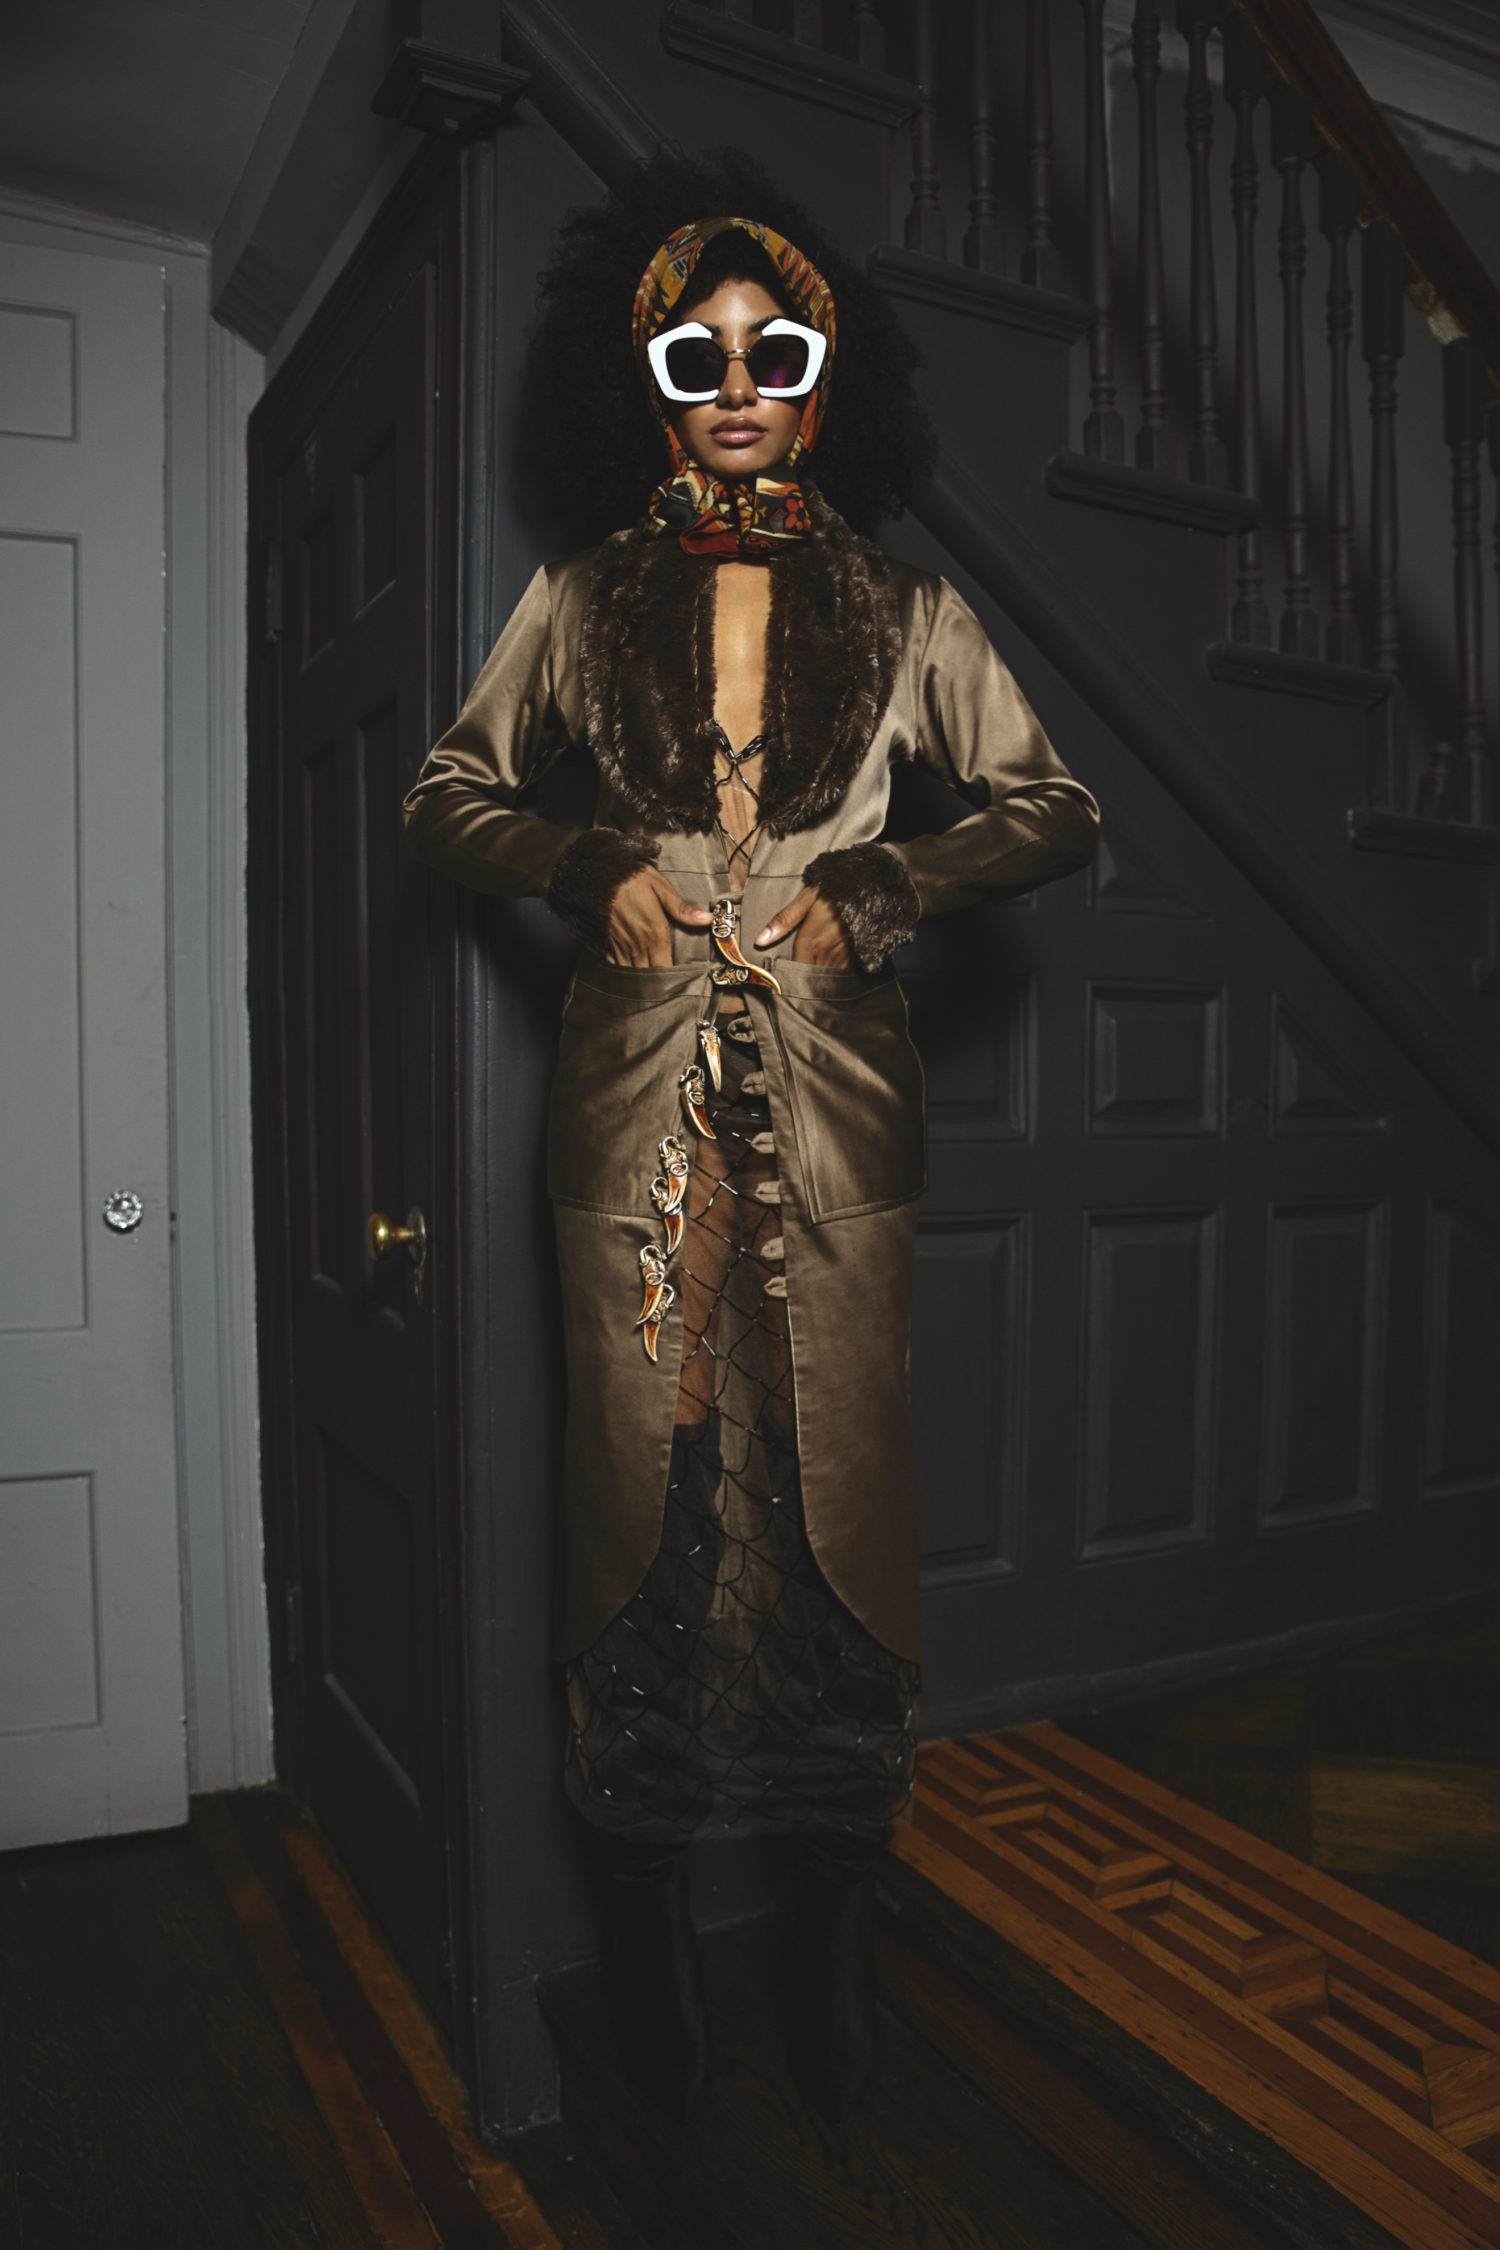 Weizdhurm Franklyn Debuts The Campaign for His Stunningly Ethereal Collection 'The Girl in the Mask'